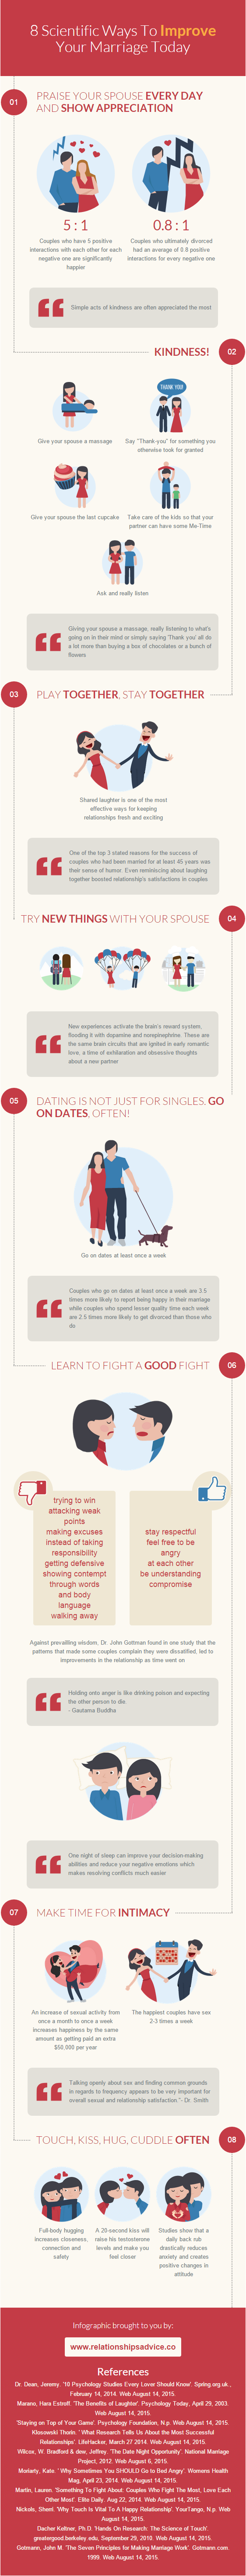 How To Scientifically Improve Your Marriage - Infographic